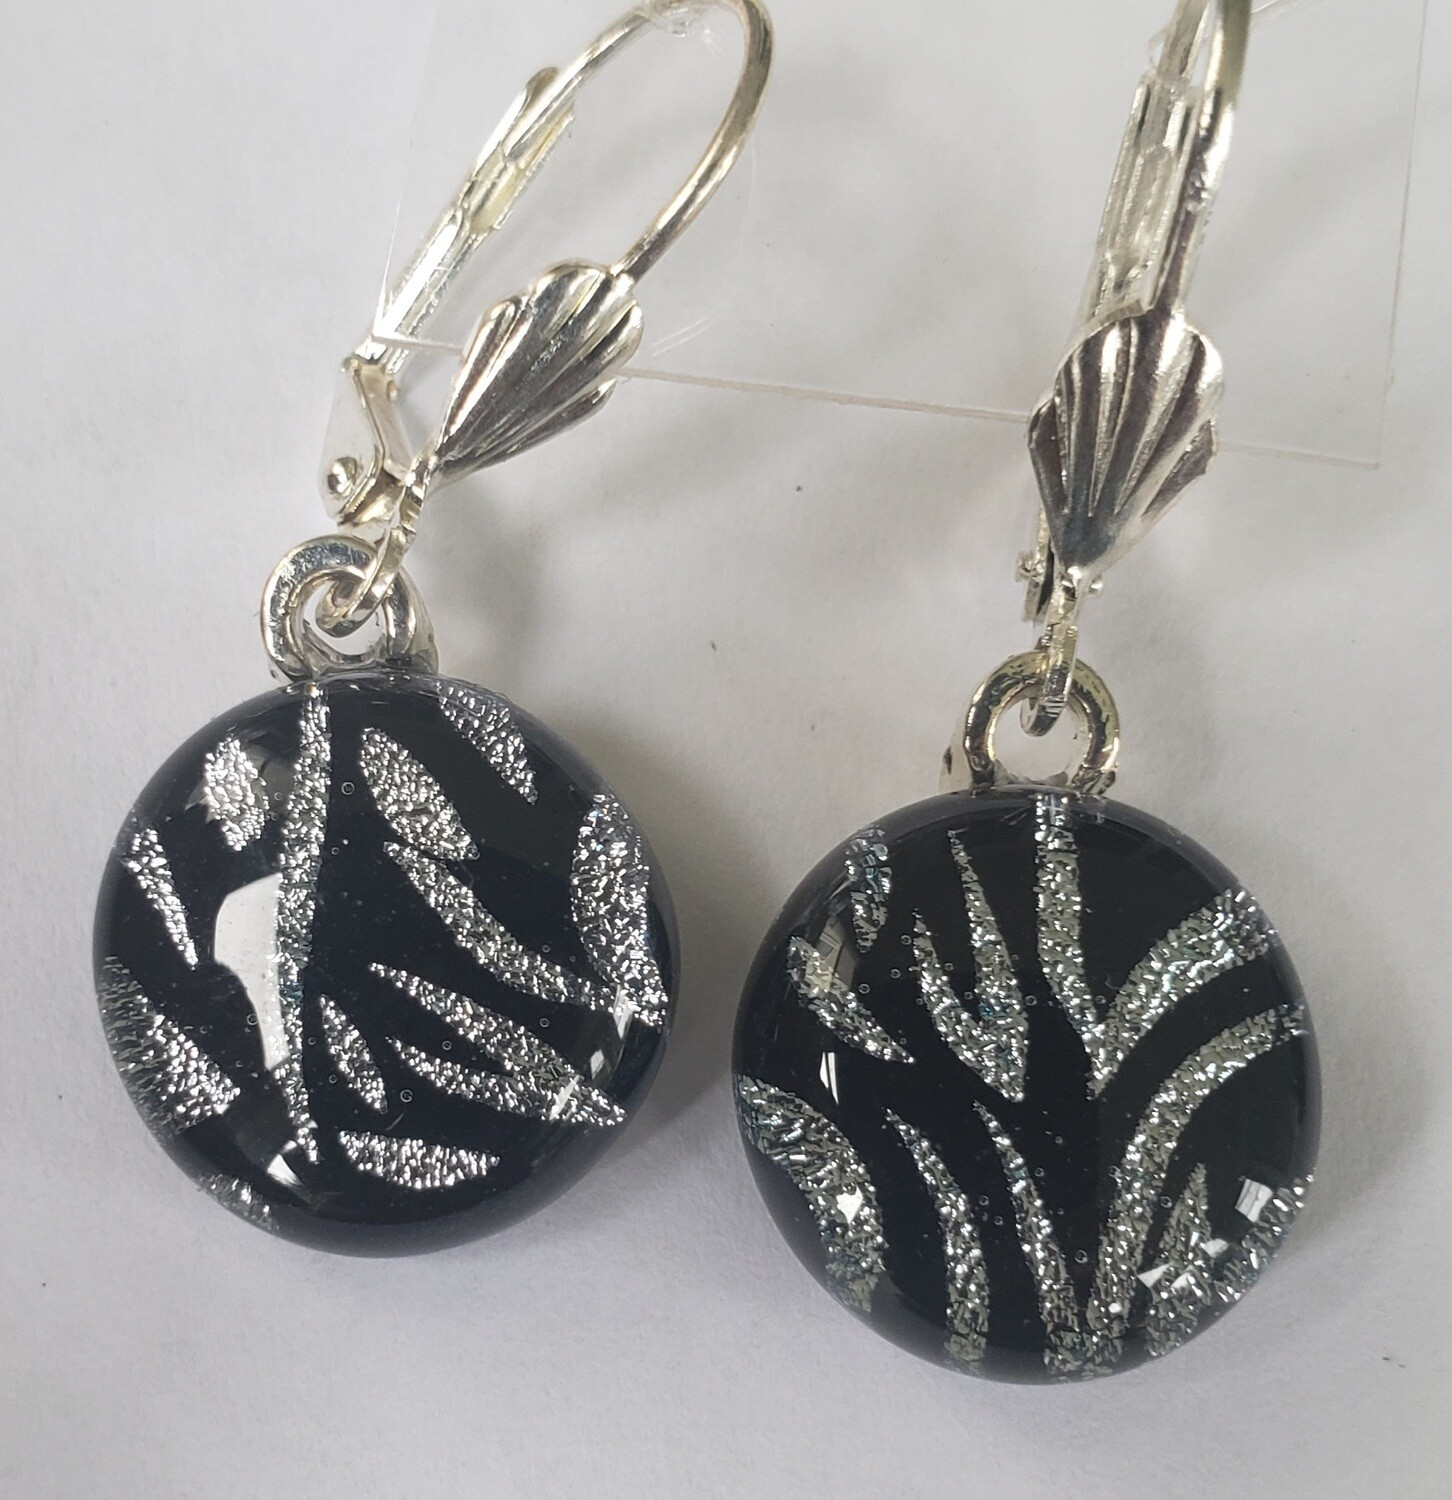 Etched dichroic glass earrings